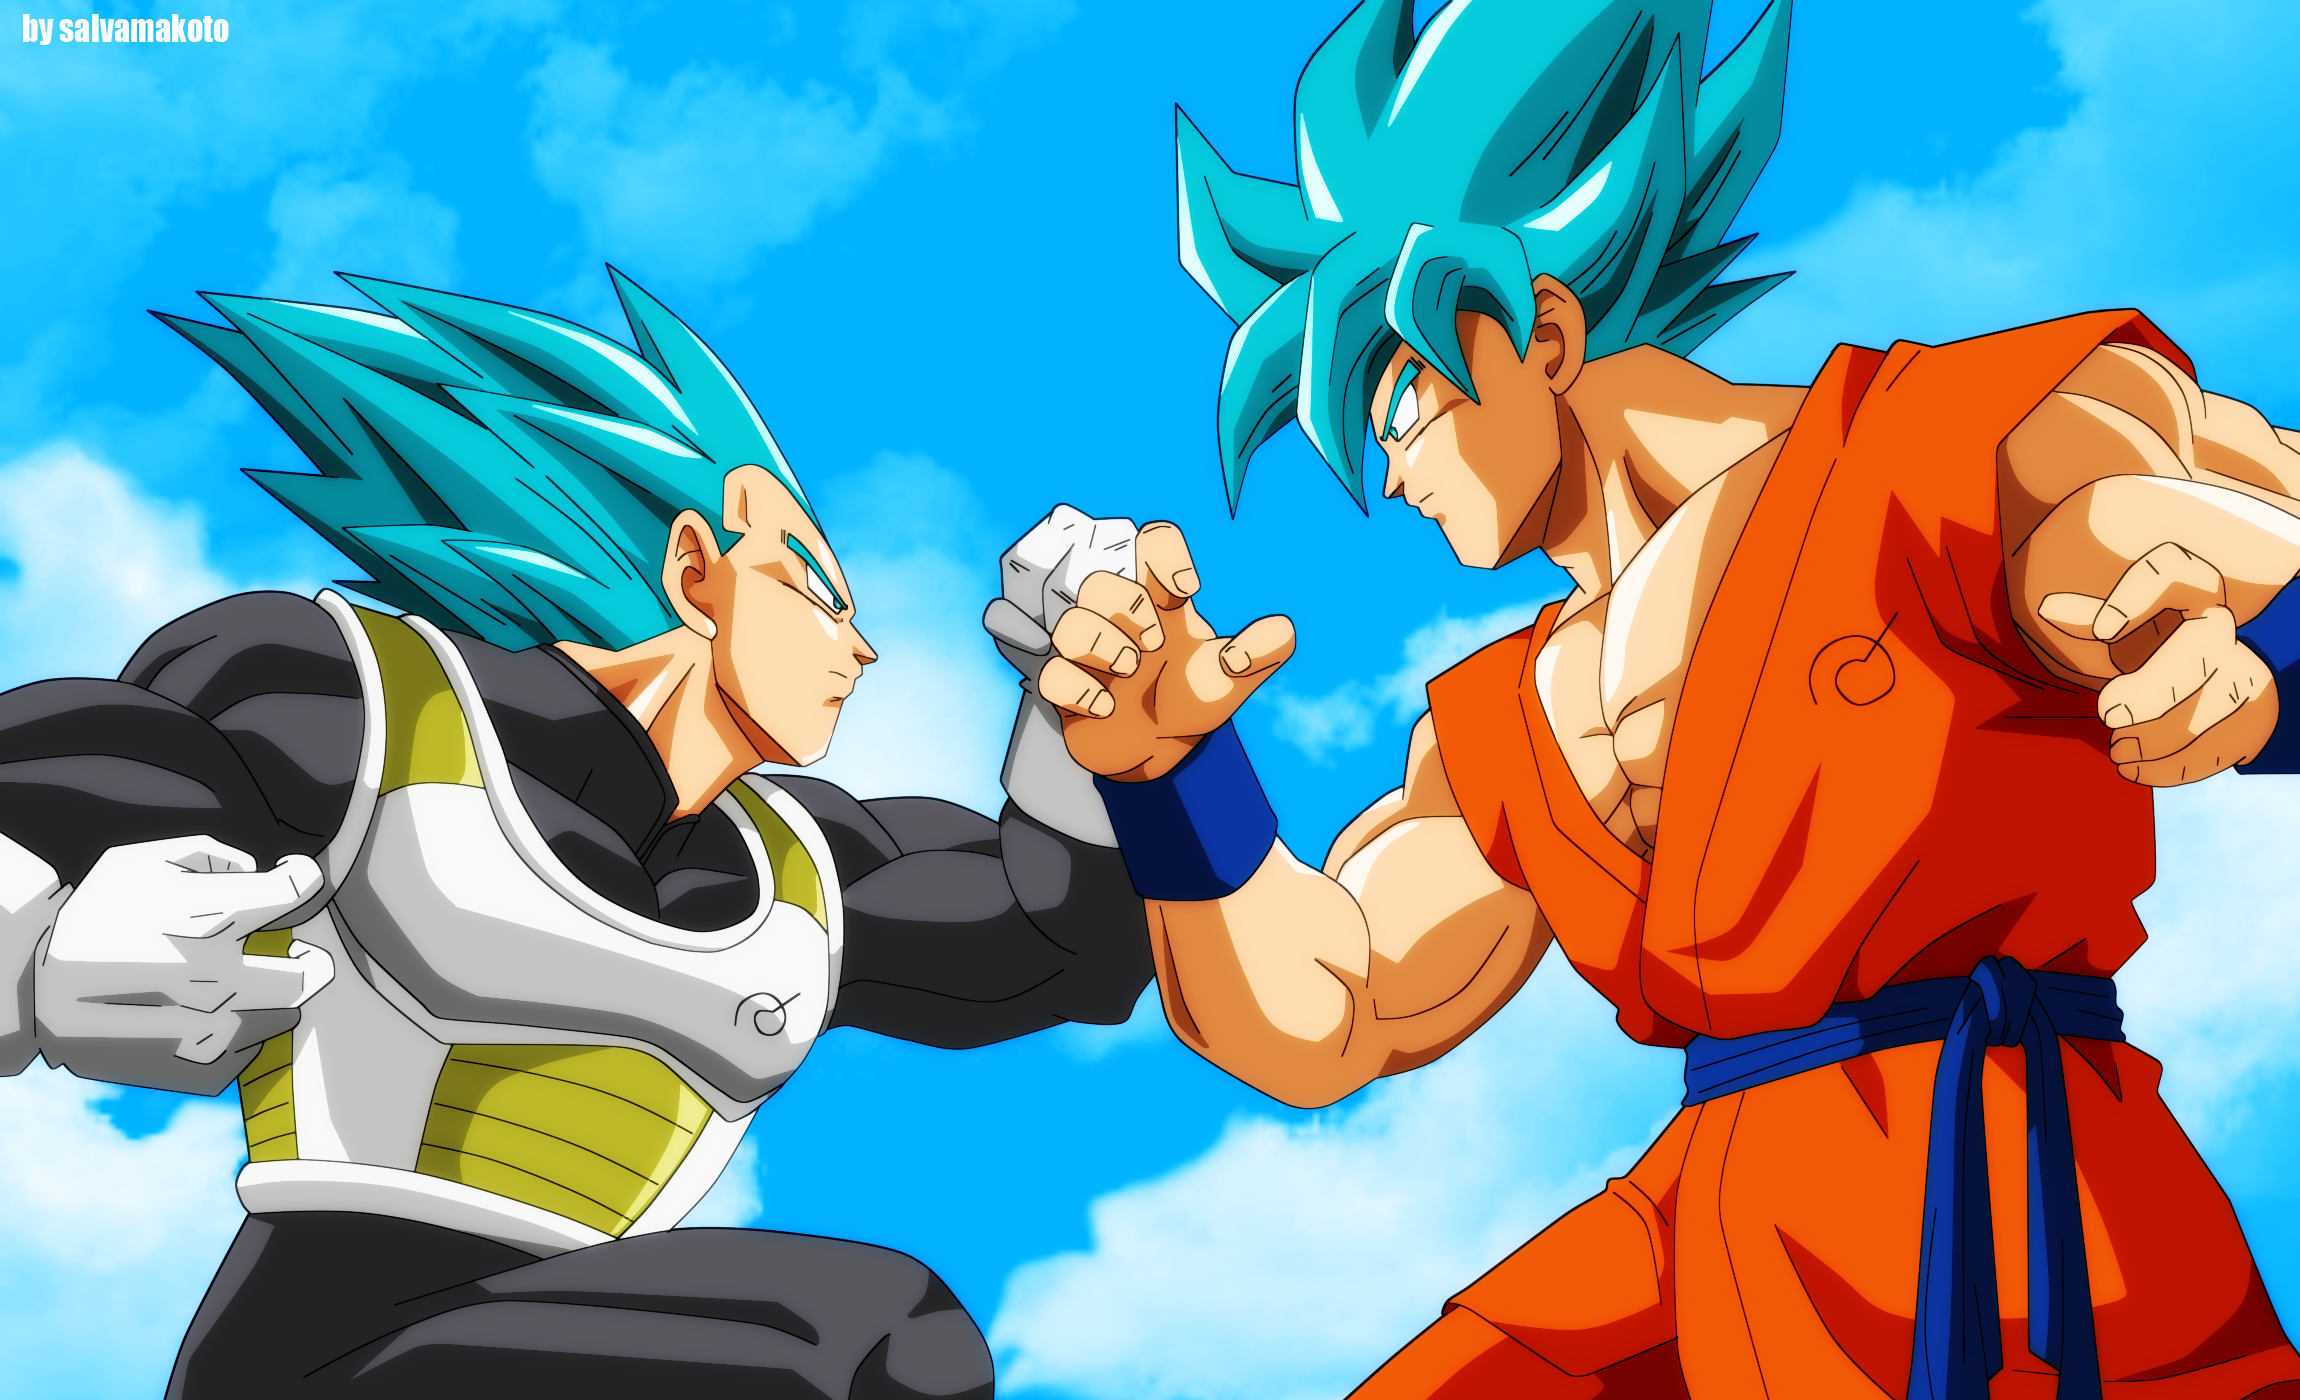 Fondos de dragon ball super wallpapers dragon ball z - Goku vs vegeta super saiyan 5 ...